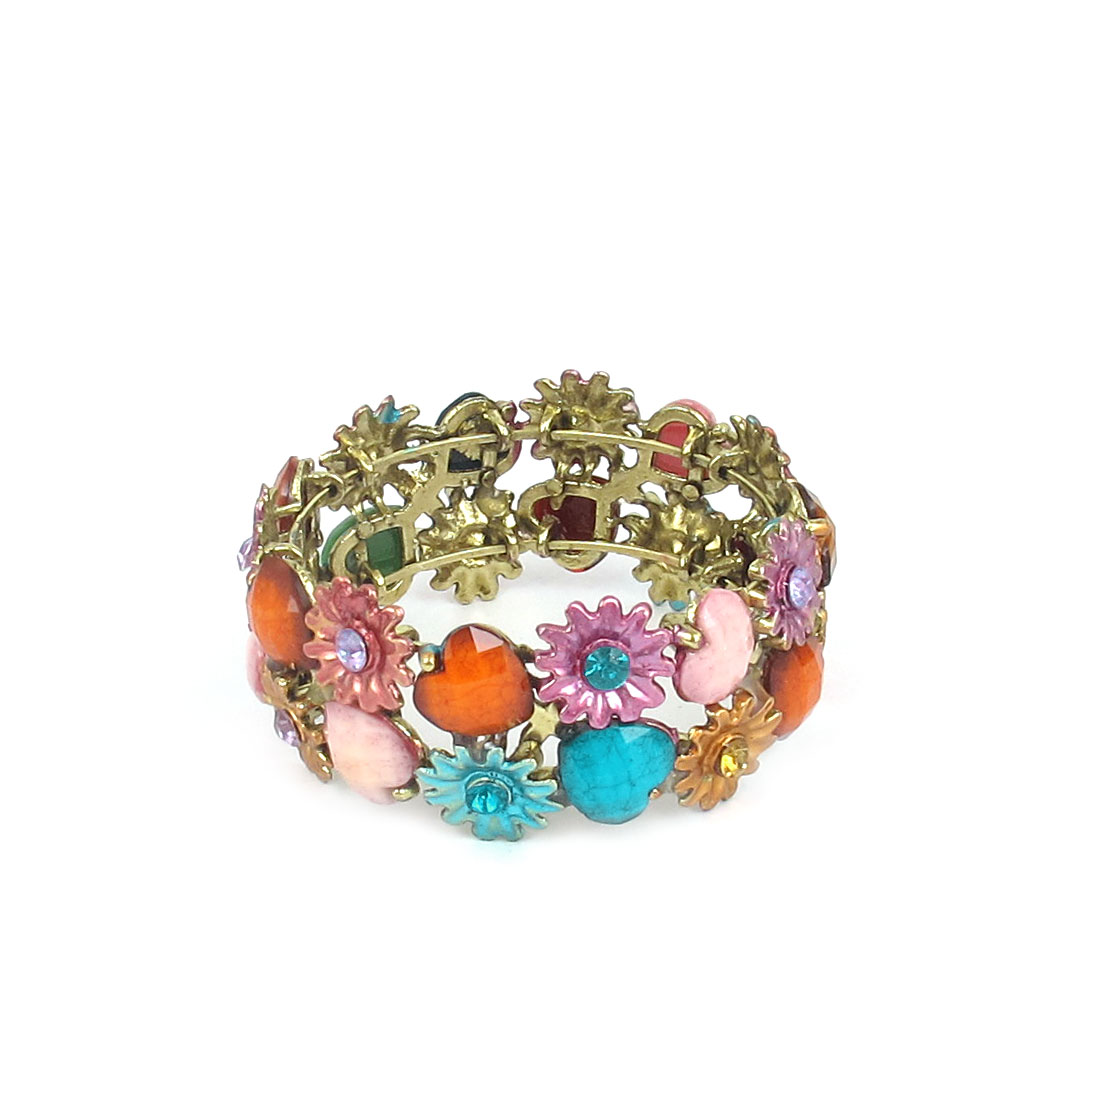 Wedding Party Plastic Rhinestone Inlay Flower Design Wrist Bracelet Bangle Ornament